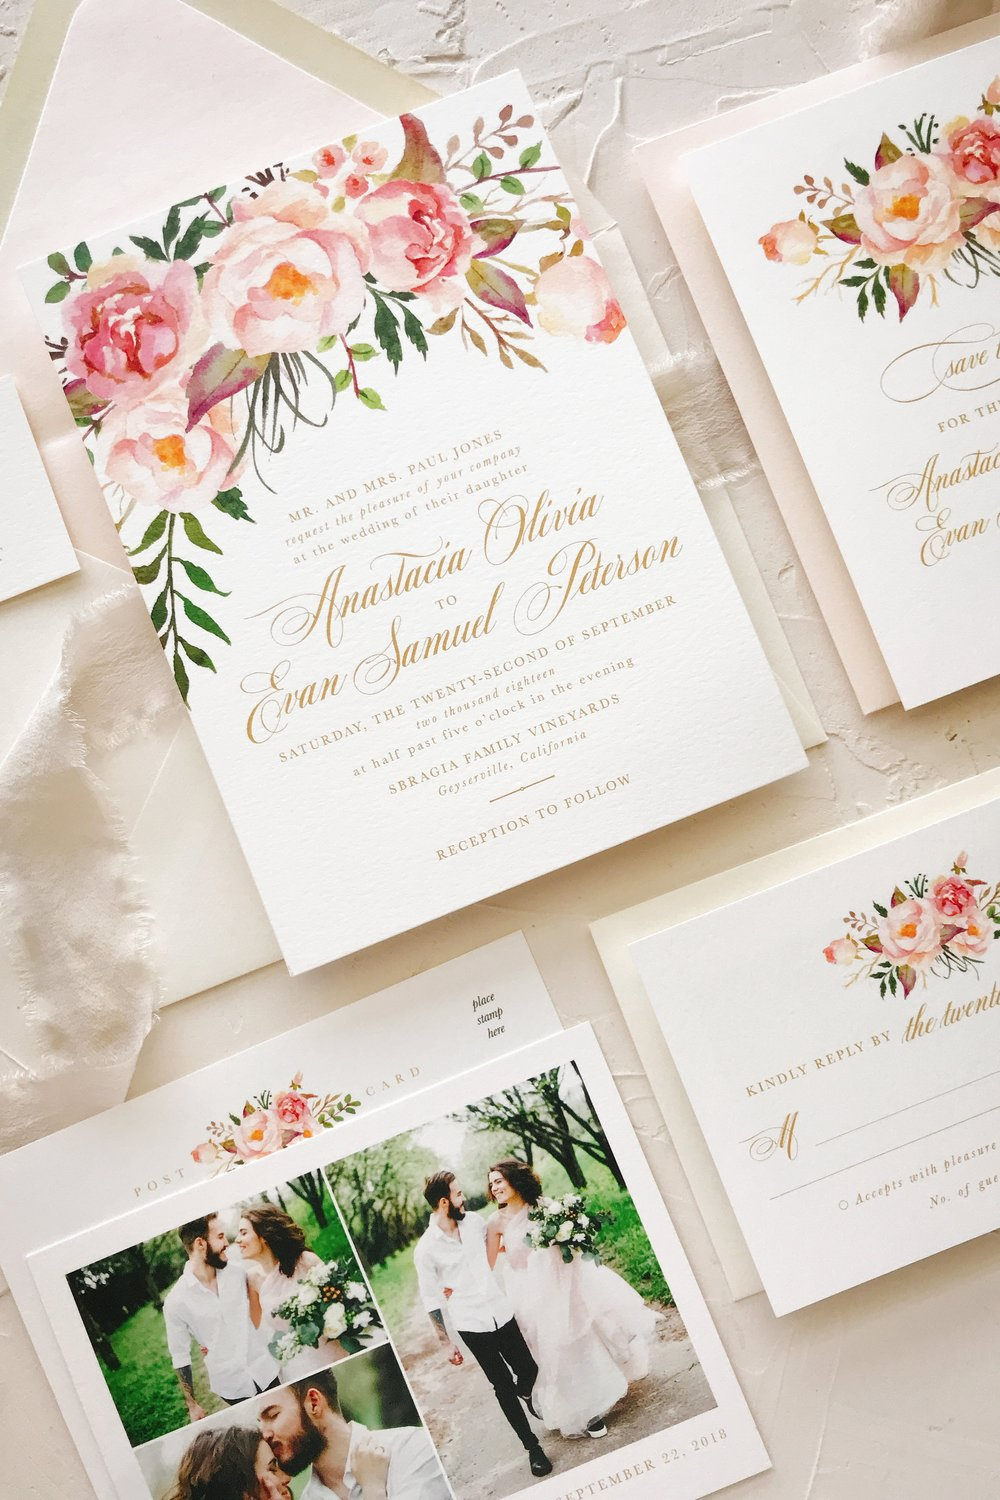 Floral Wedding Invitations.jpg